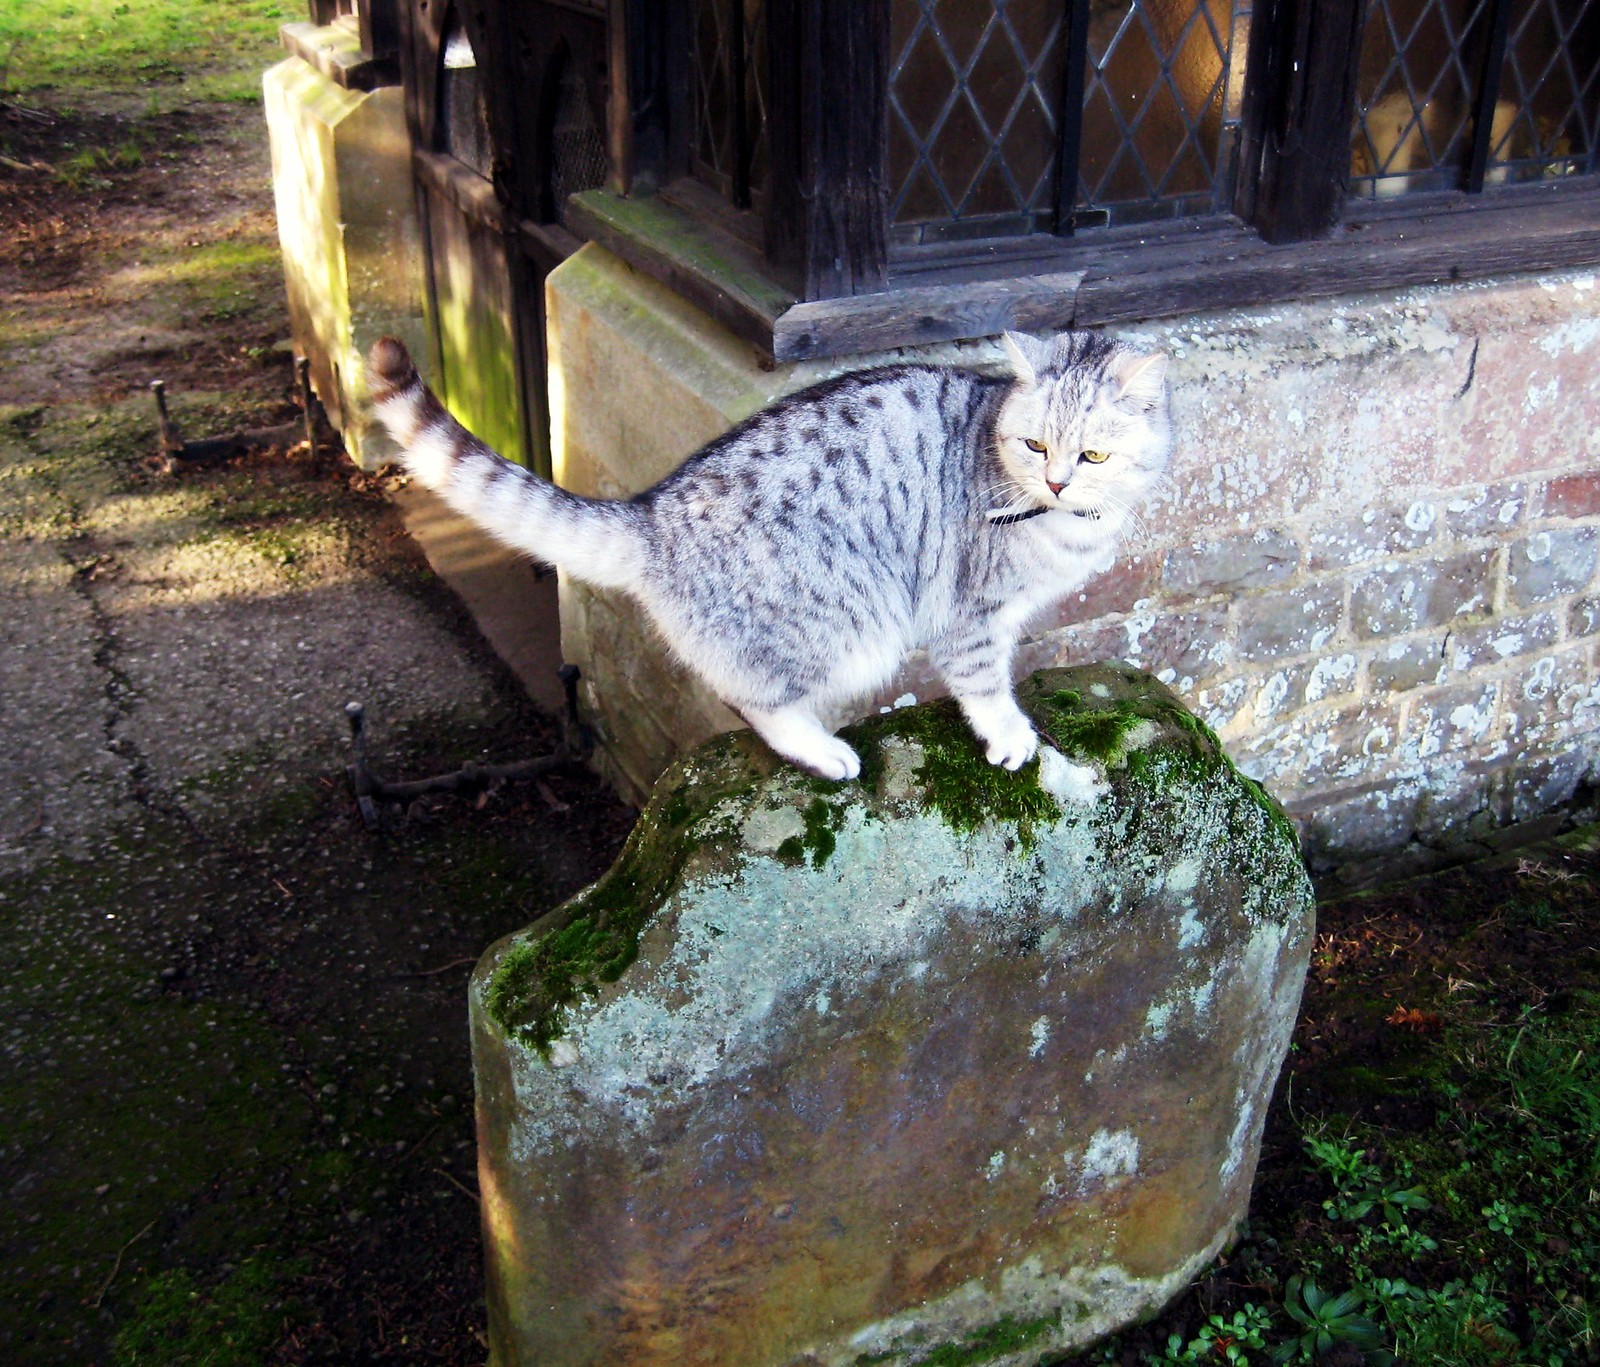 Church Cat This moon-faced cat followed us all around the churchyard of St Peter's in Hever where Ann Boleyn's father is buried. Walk 19, Book 1